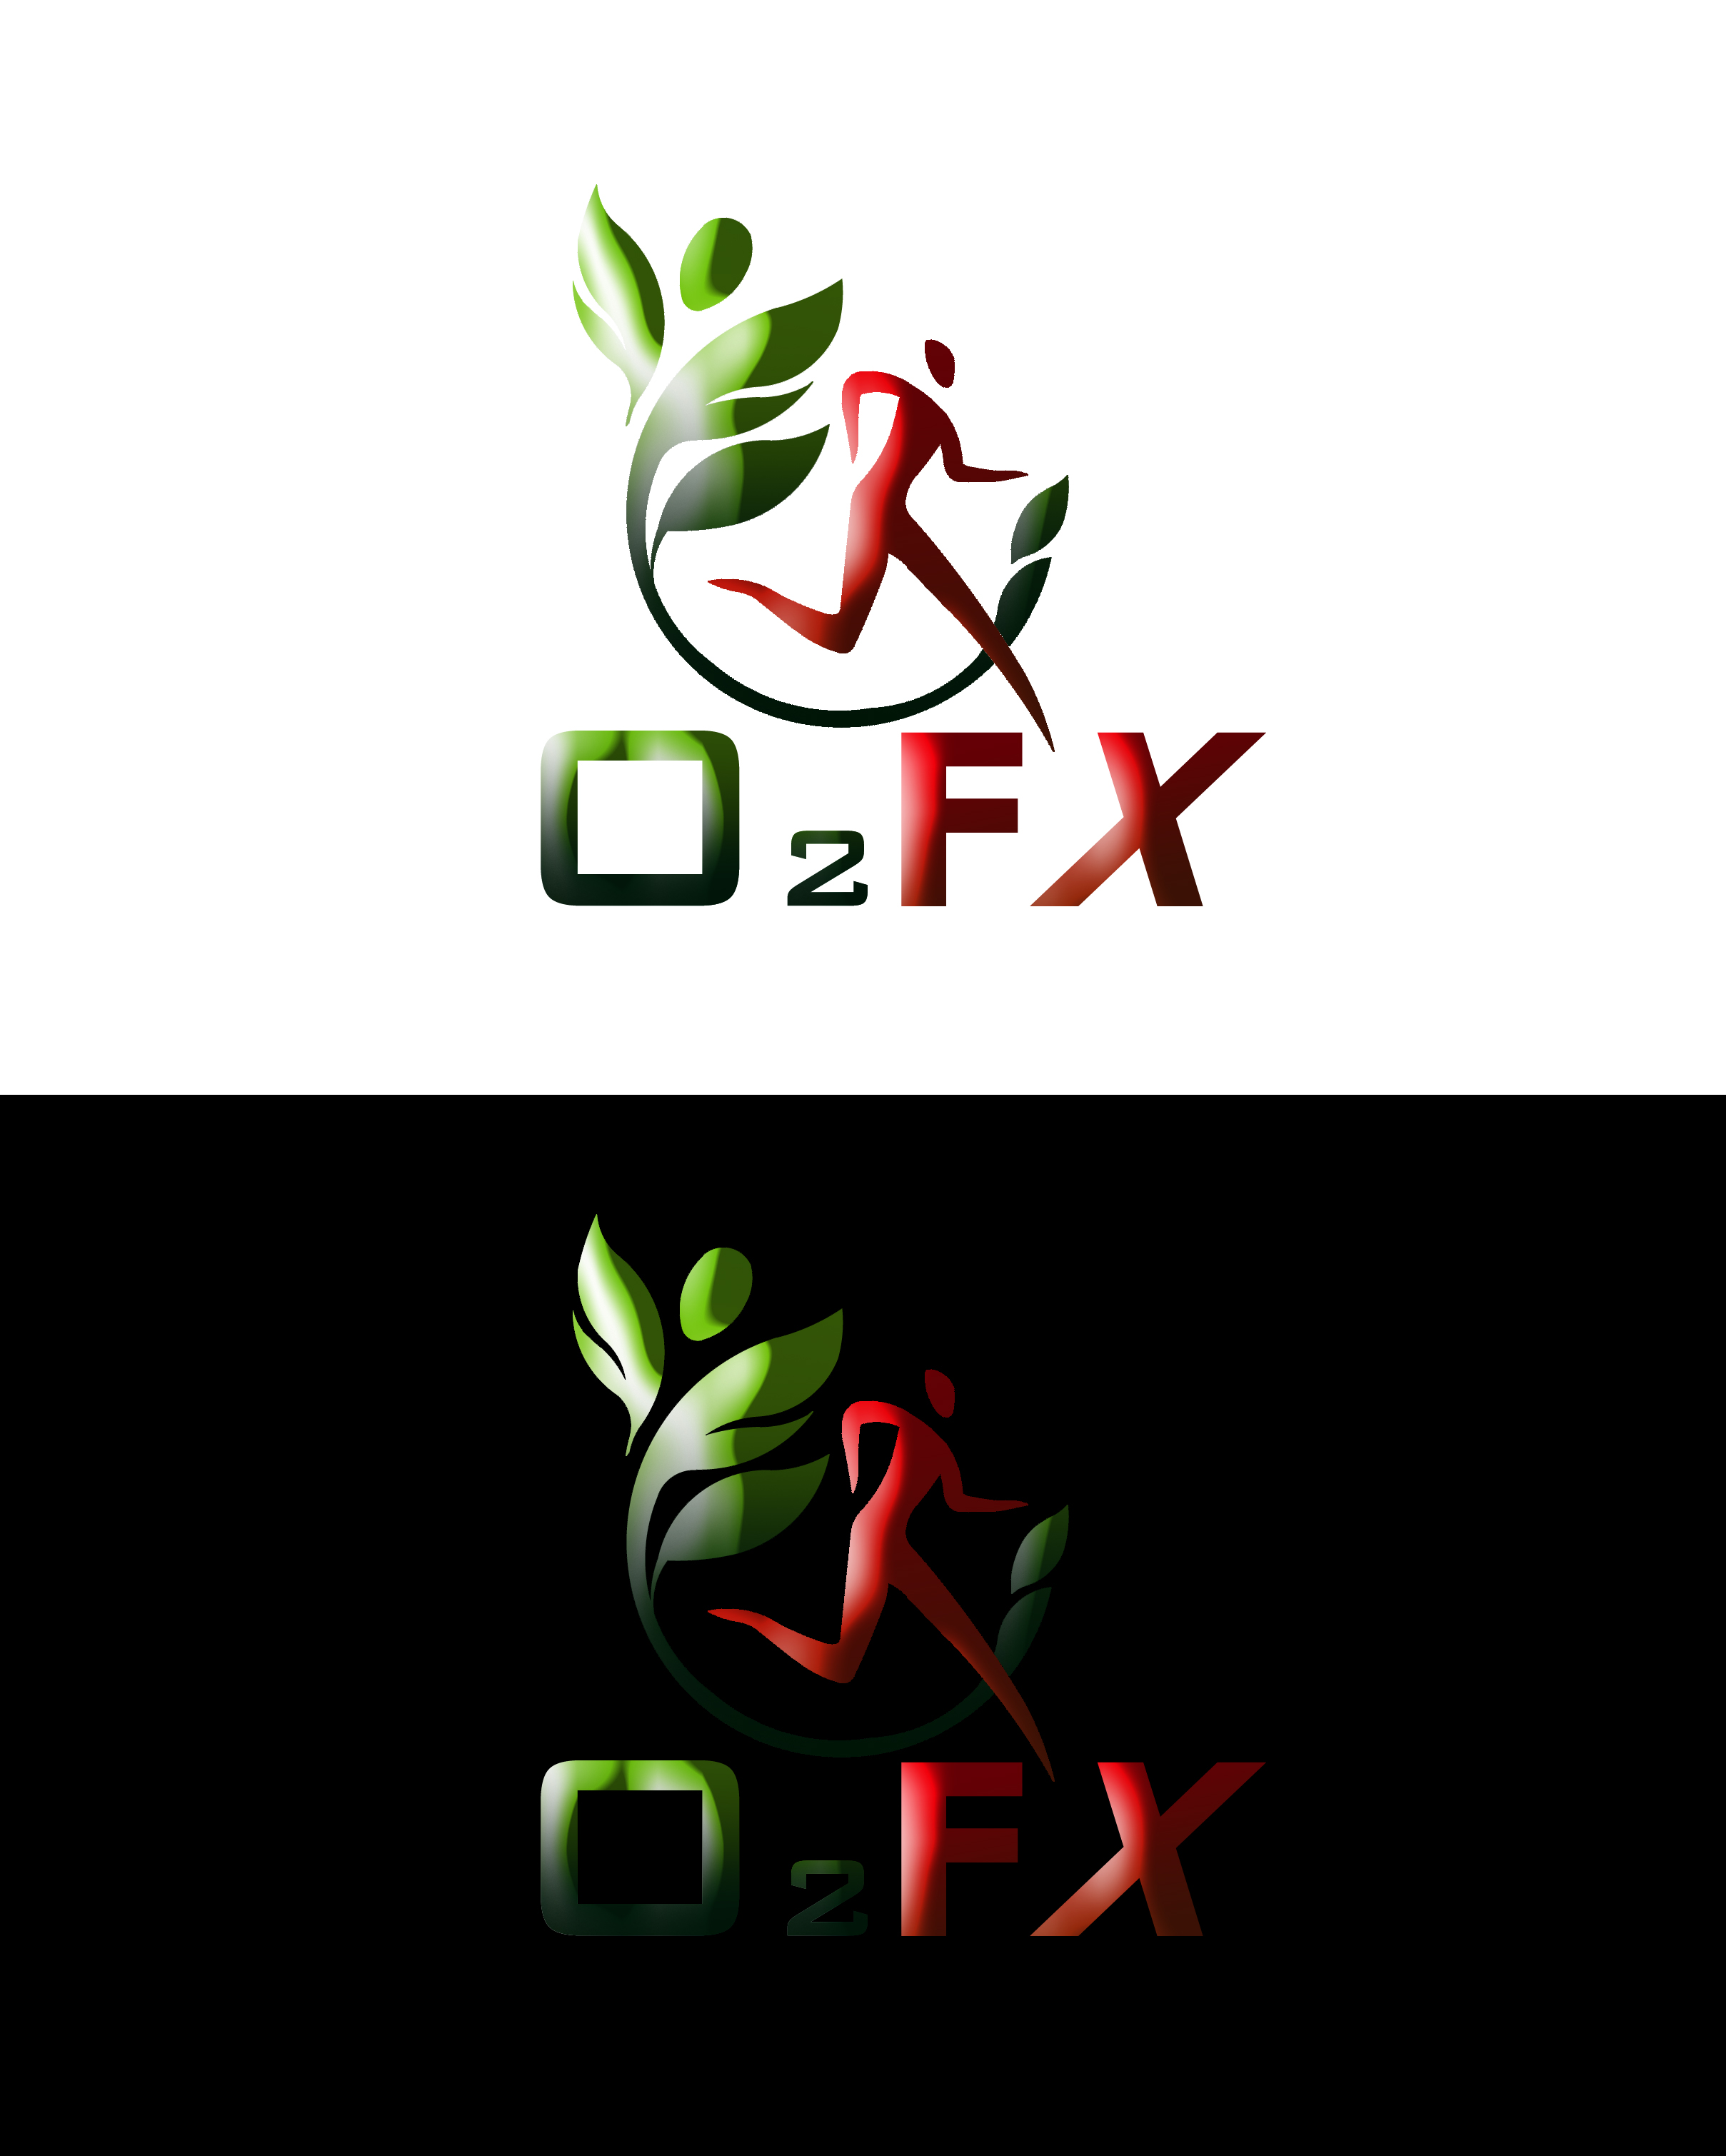 Logo Design by JSDESIGNGROUP - Entry No. 75 in the Logo Design Contest Captivating Logo Design for O2FX.